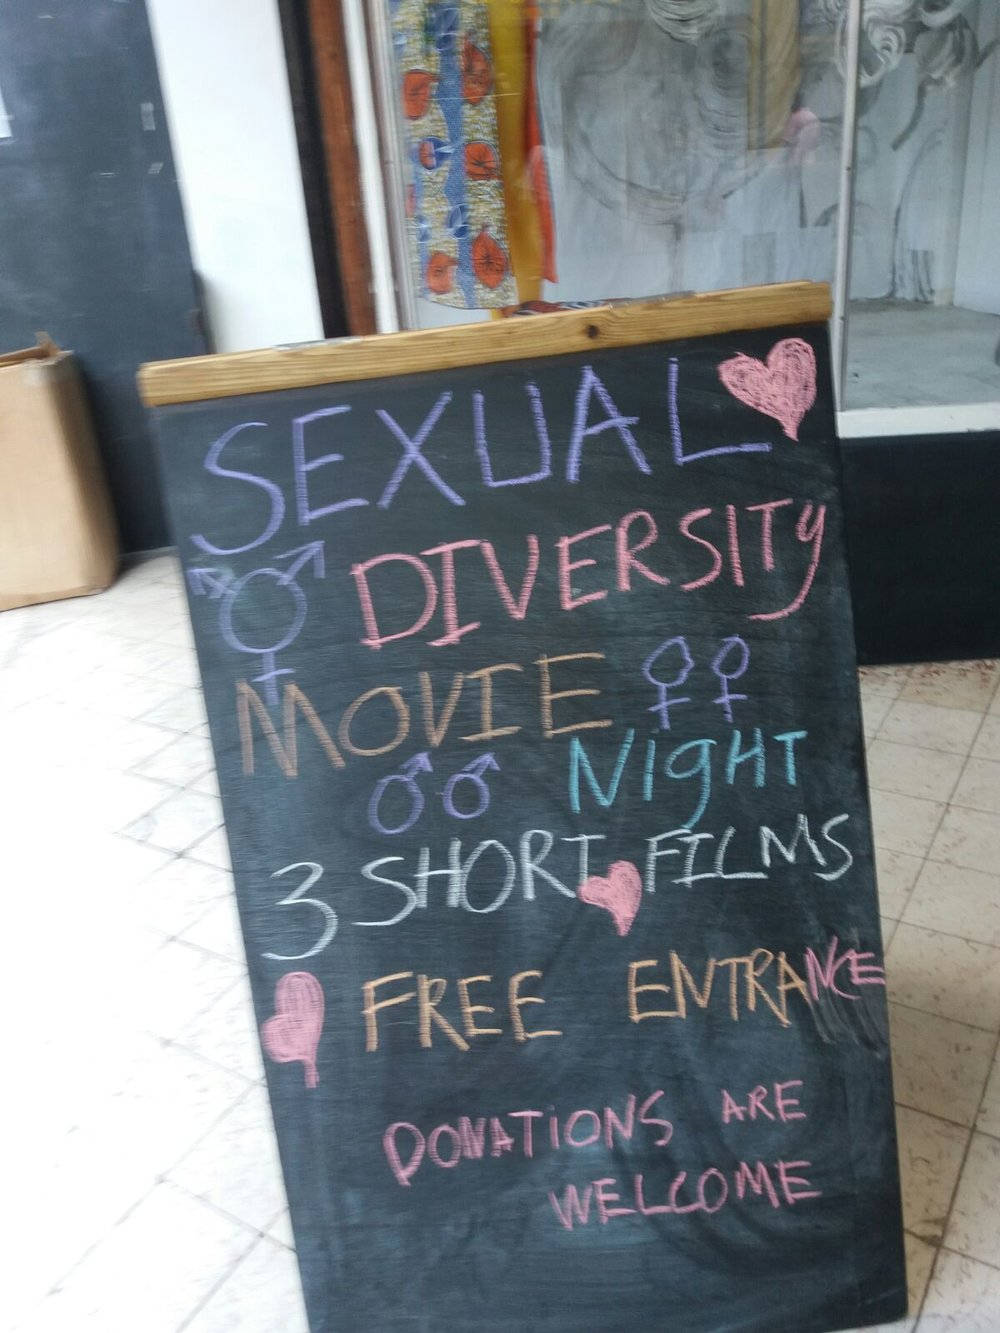 Sexual Diversity movie night 4.jpeg